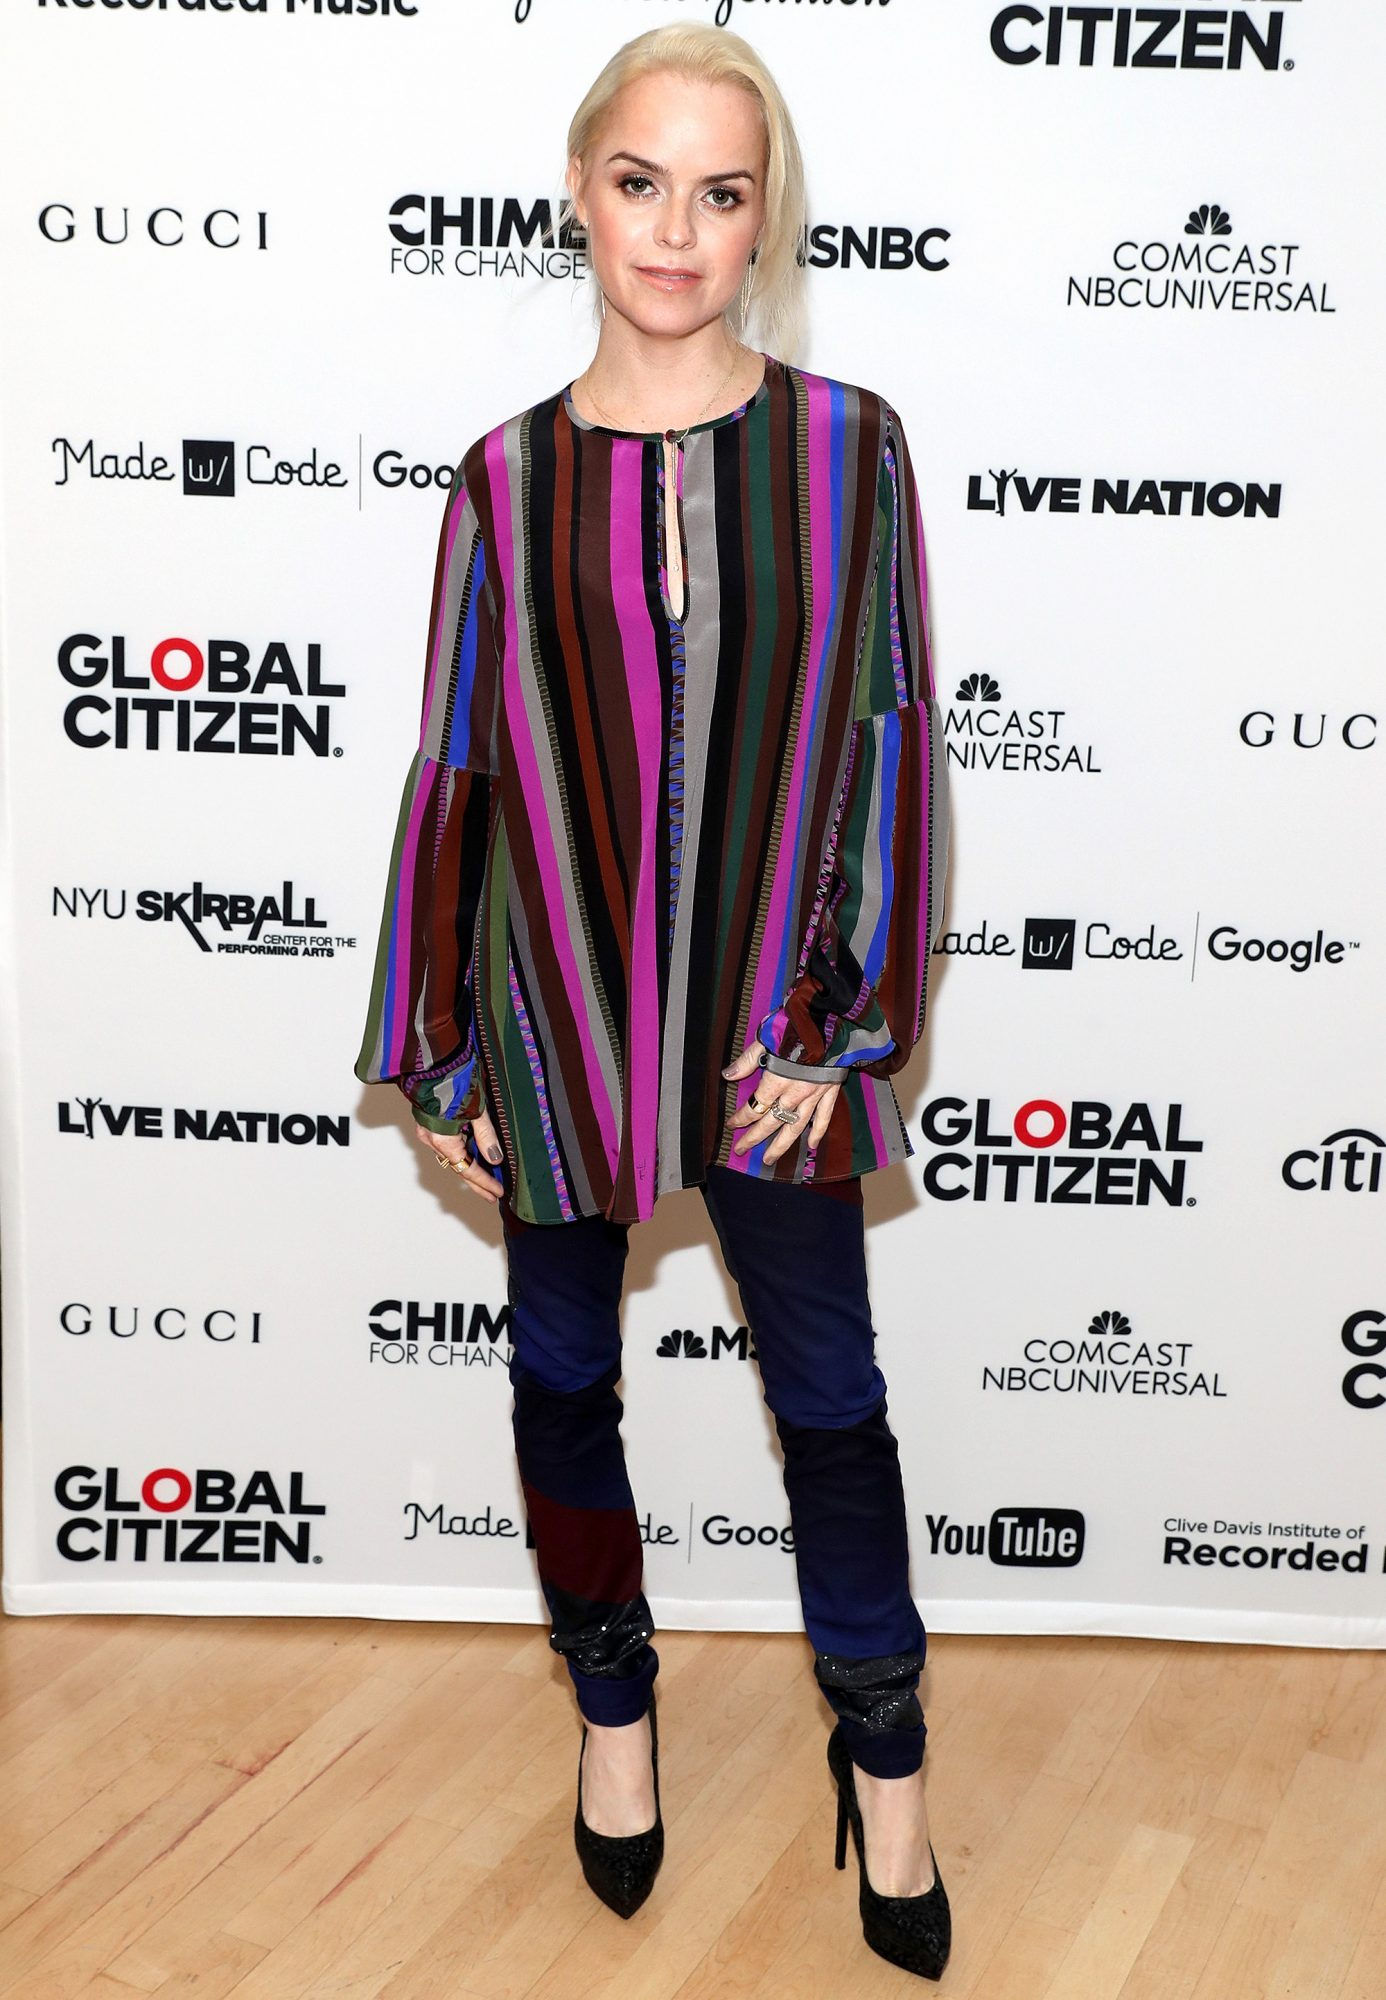 Global Citizen: The World On Stage - Backstage